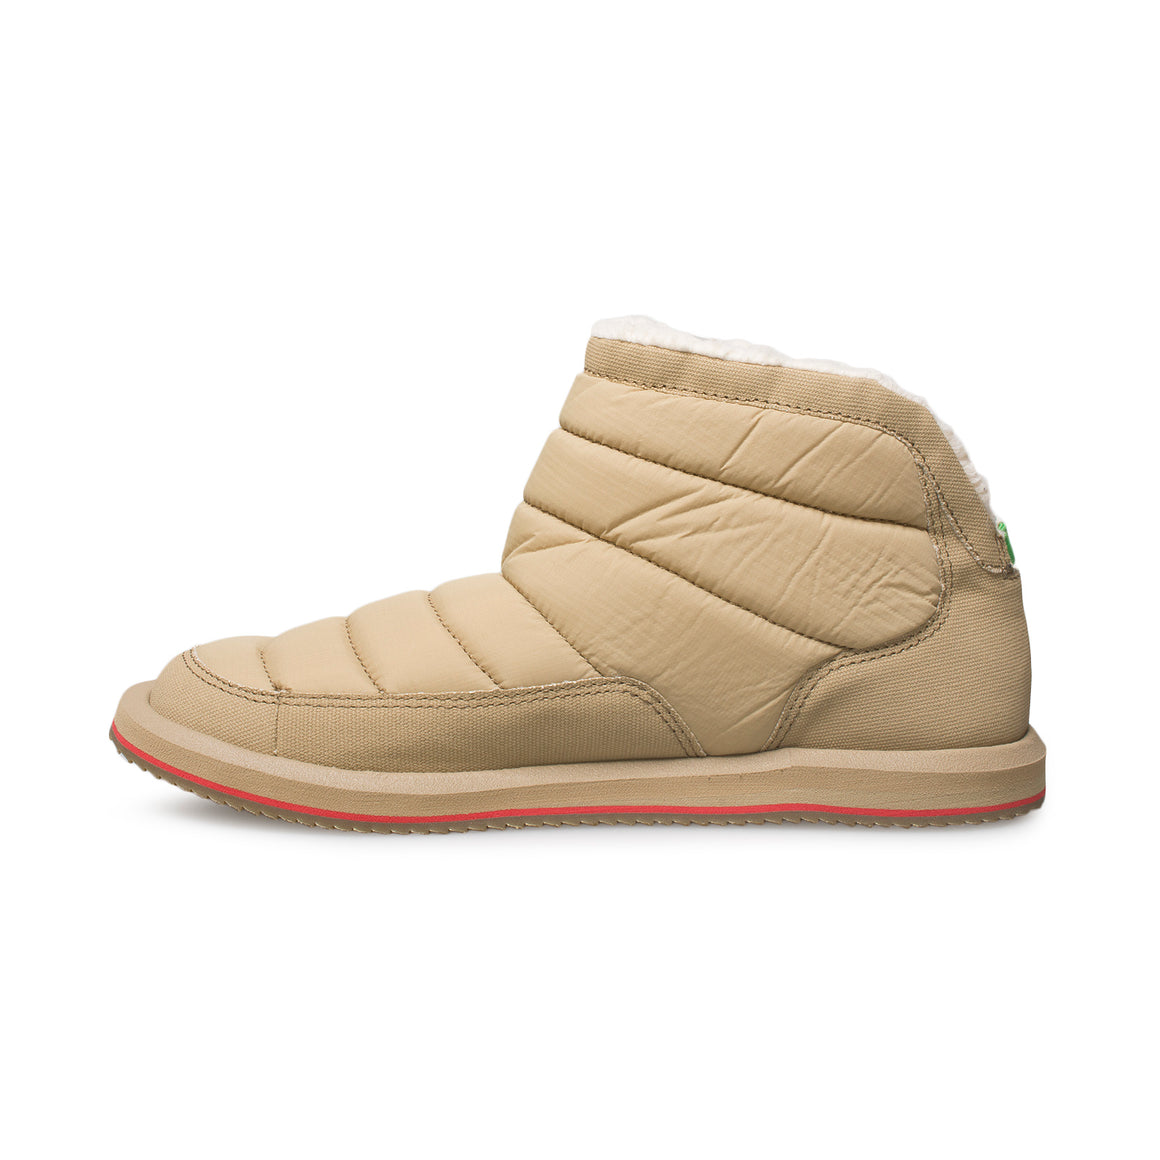 Sanuk Puff N Chill Tan Shoes - Men's